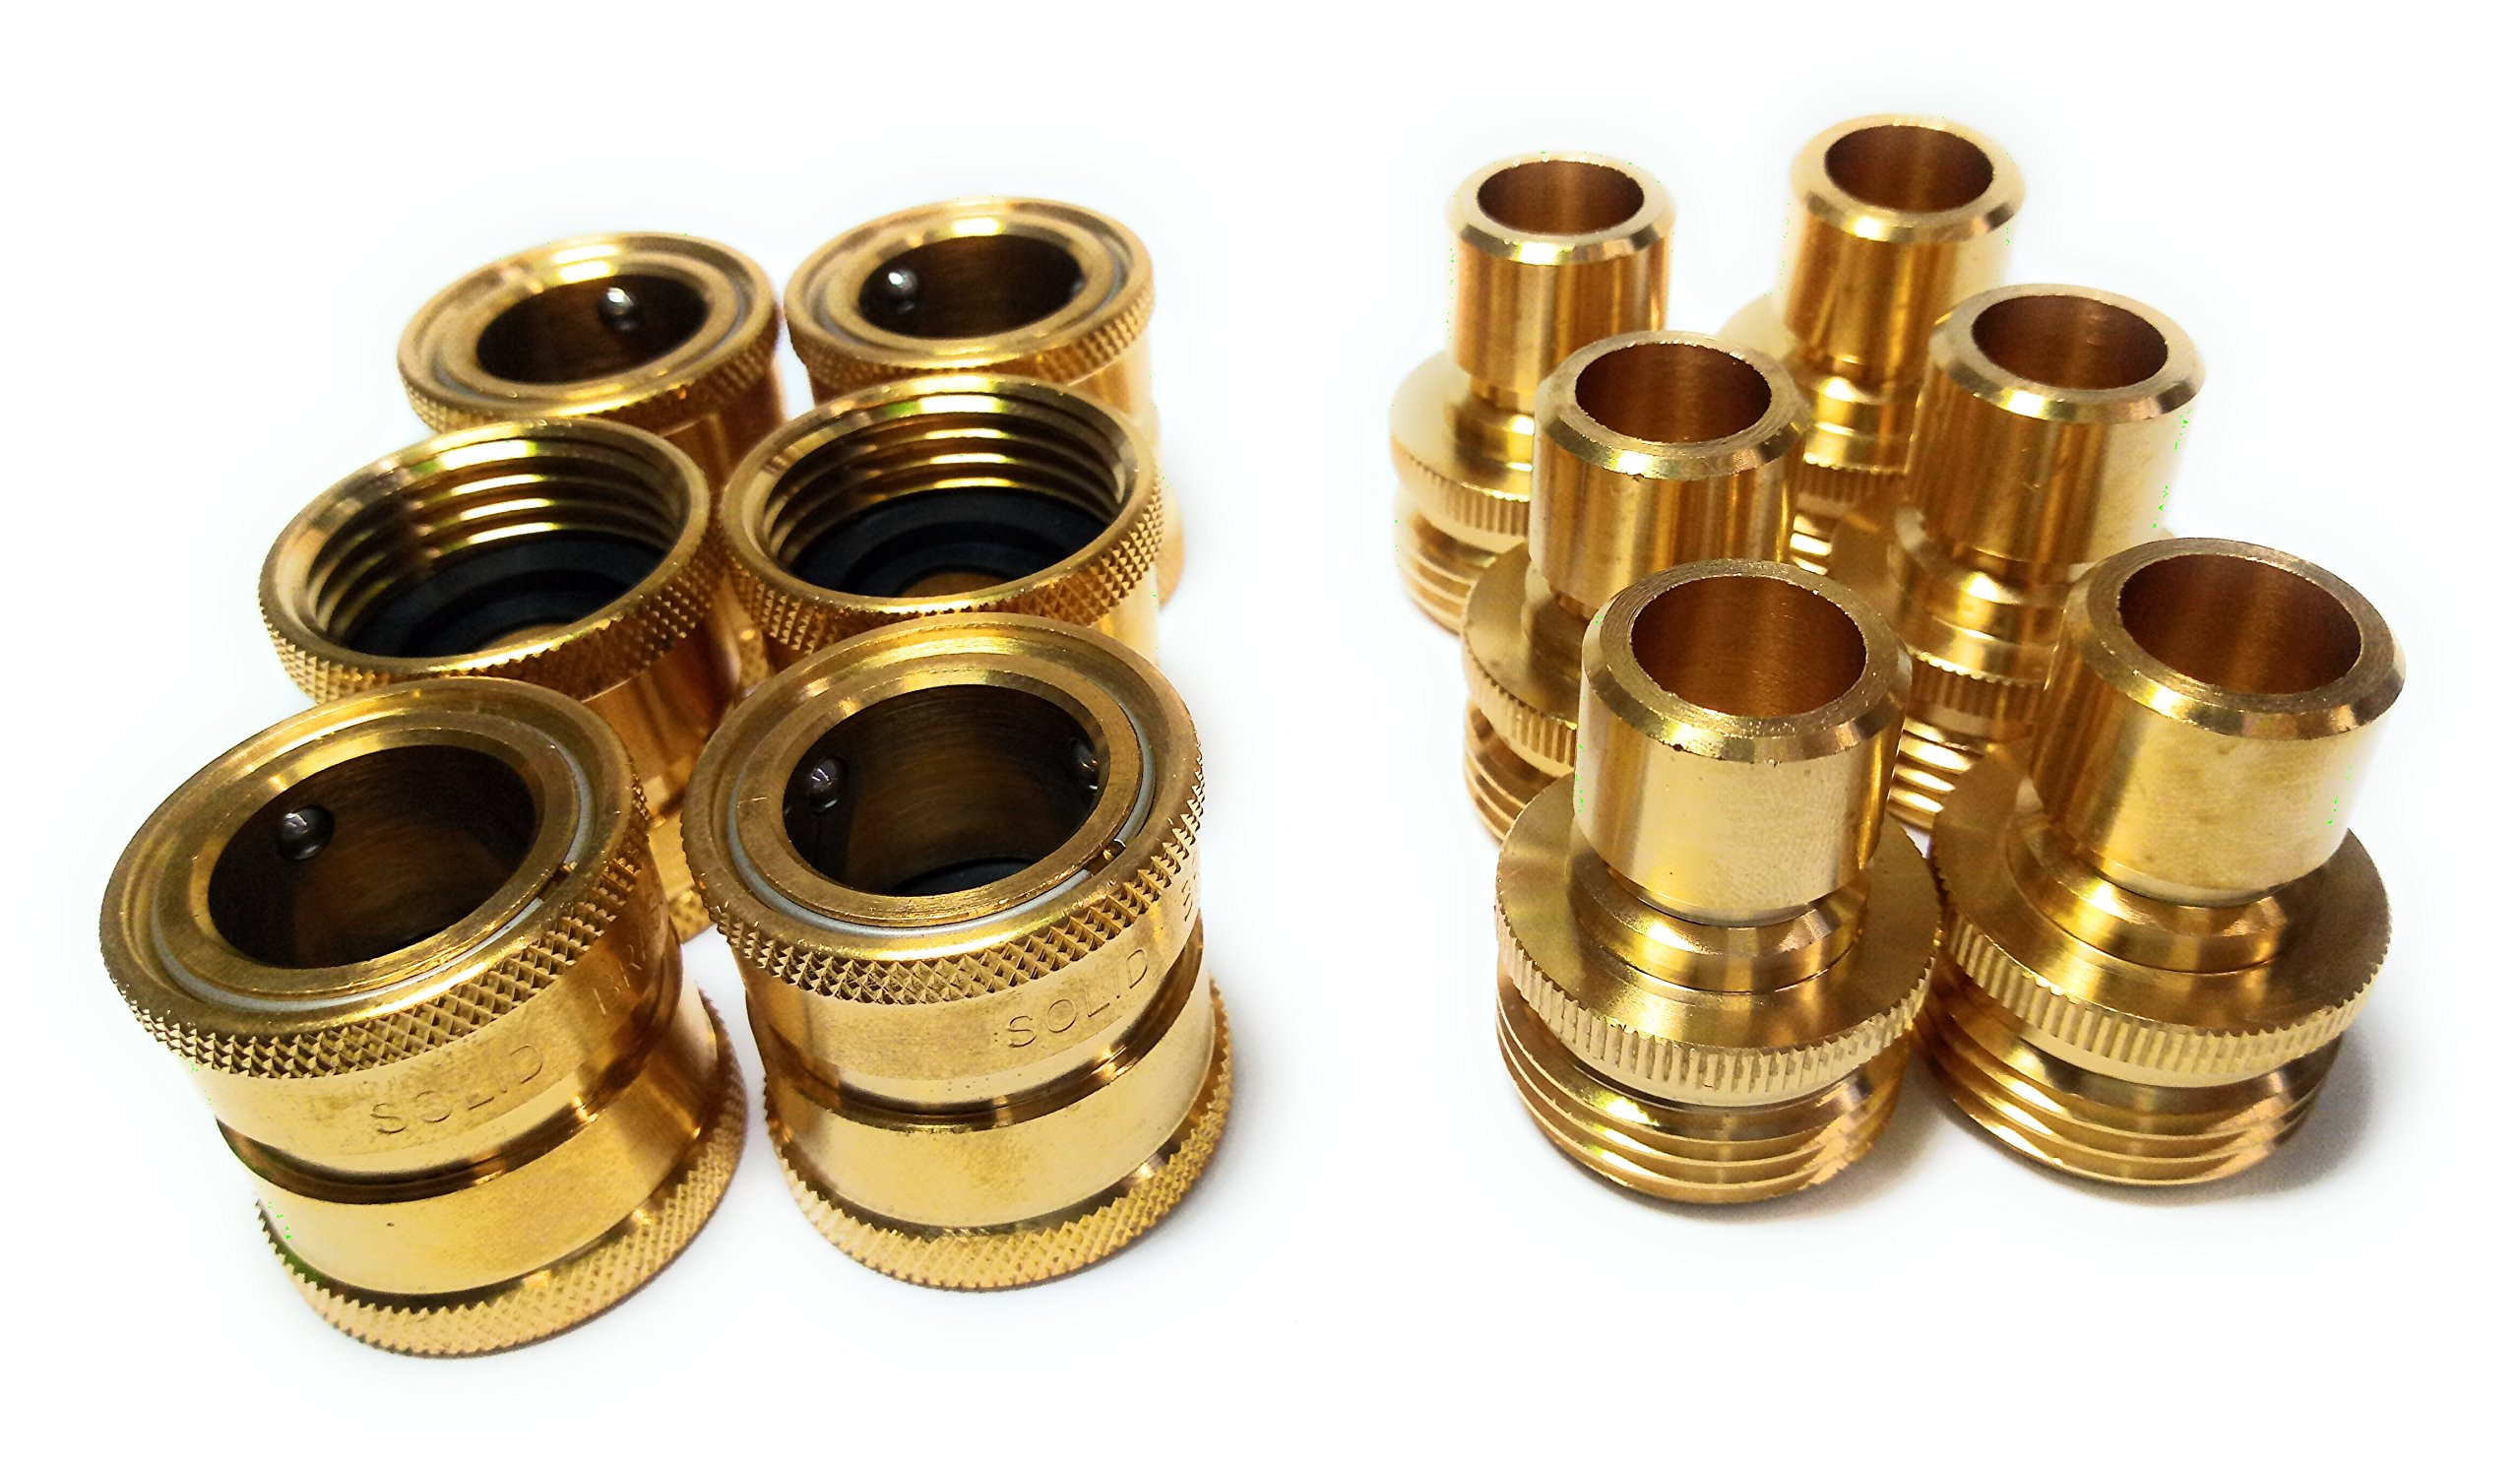 Garden Hose Quick Connect Set, Extra 30 Washers, 6 Female Connectors + 6 Male Connectors. by Solid Brass